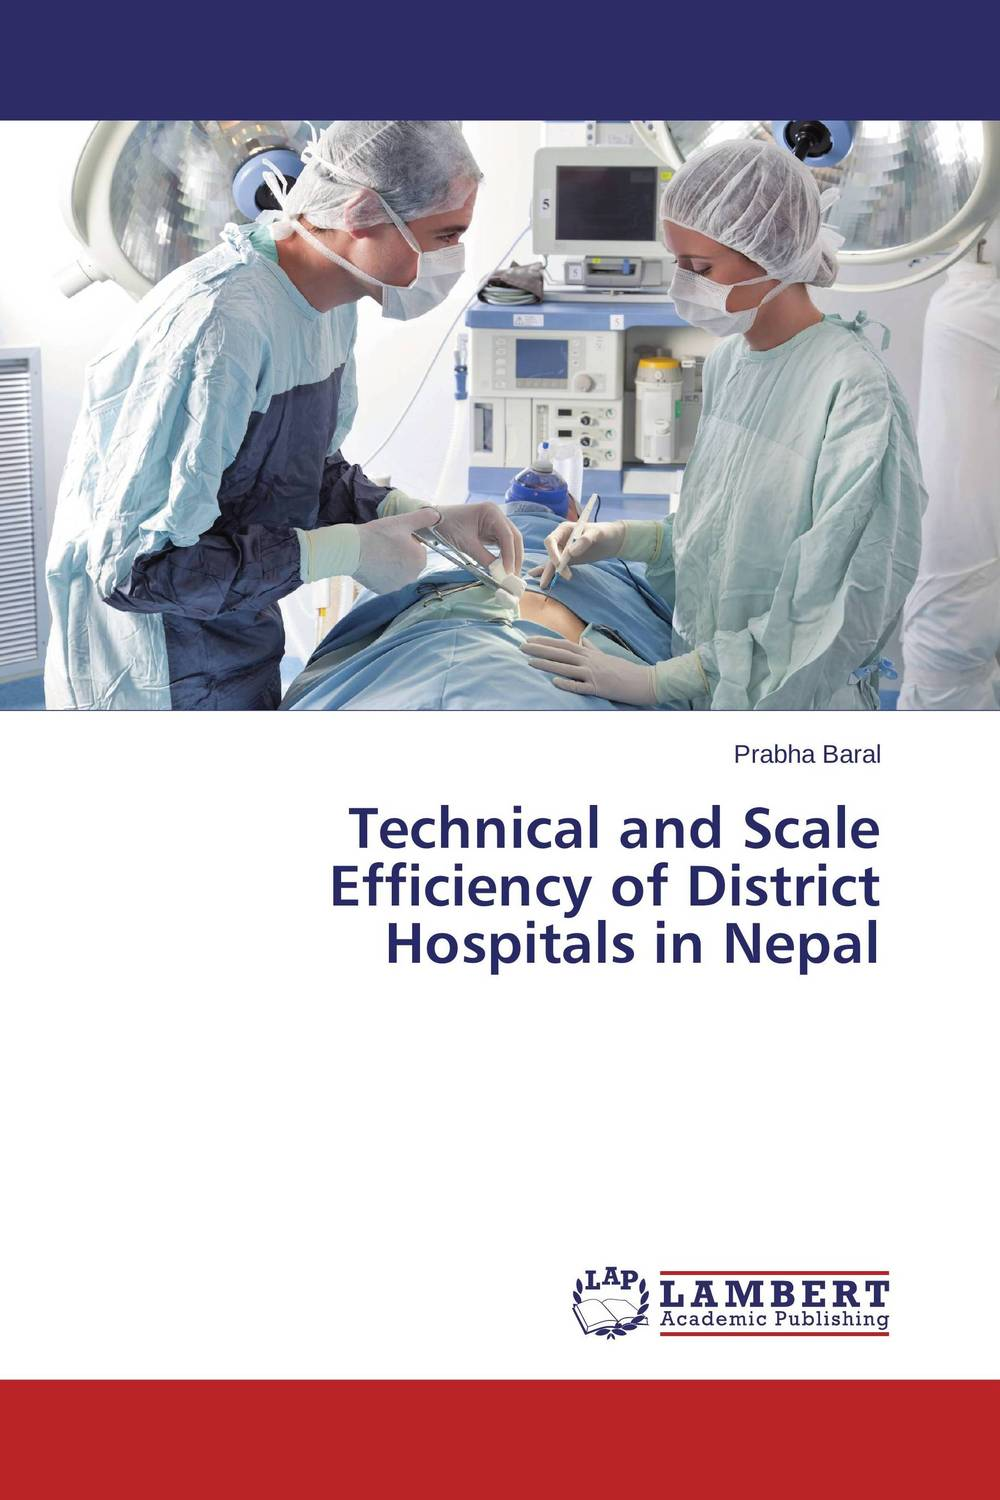 Technical and Scale Efficiency of District Hospitals in Nepal cnc machining and fabrication with efficiency quality and precision in 2015 439